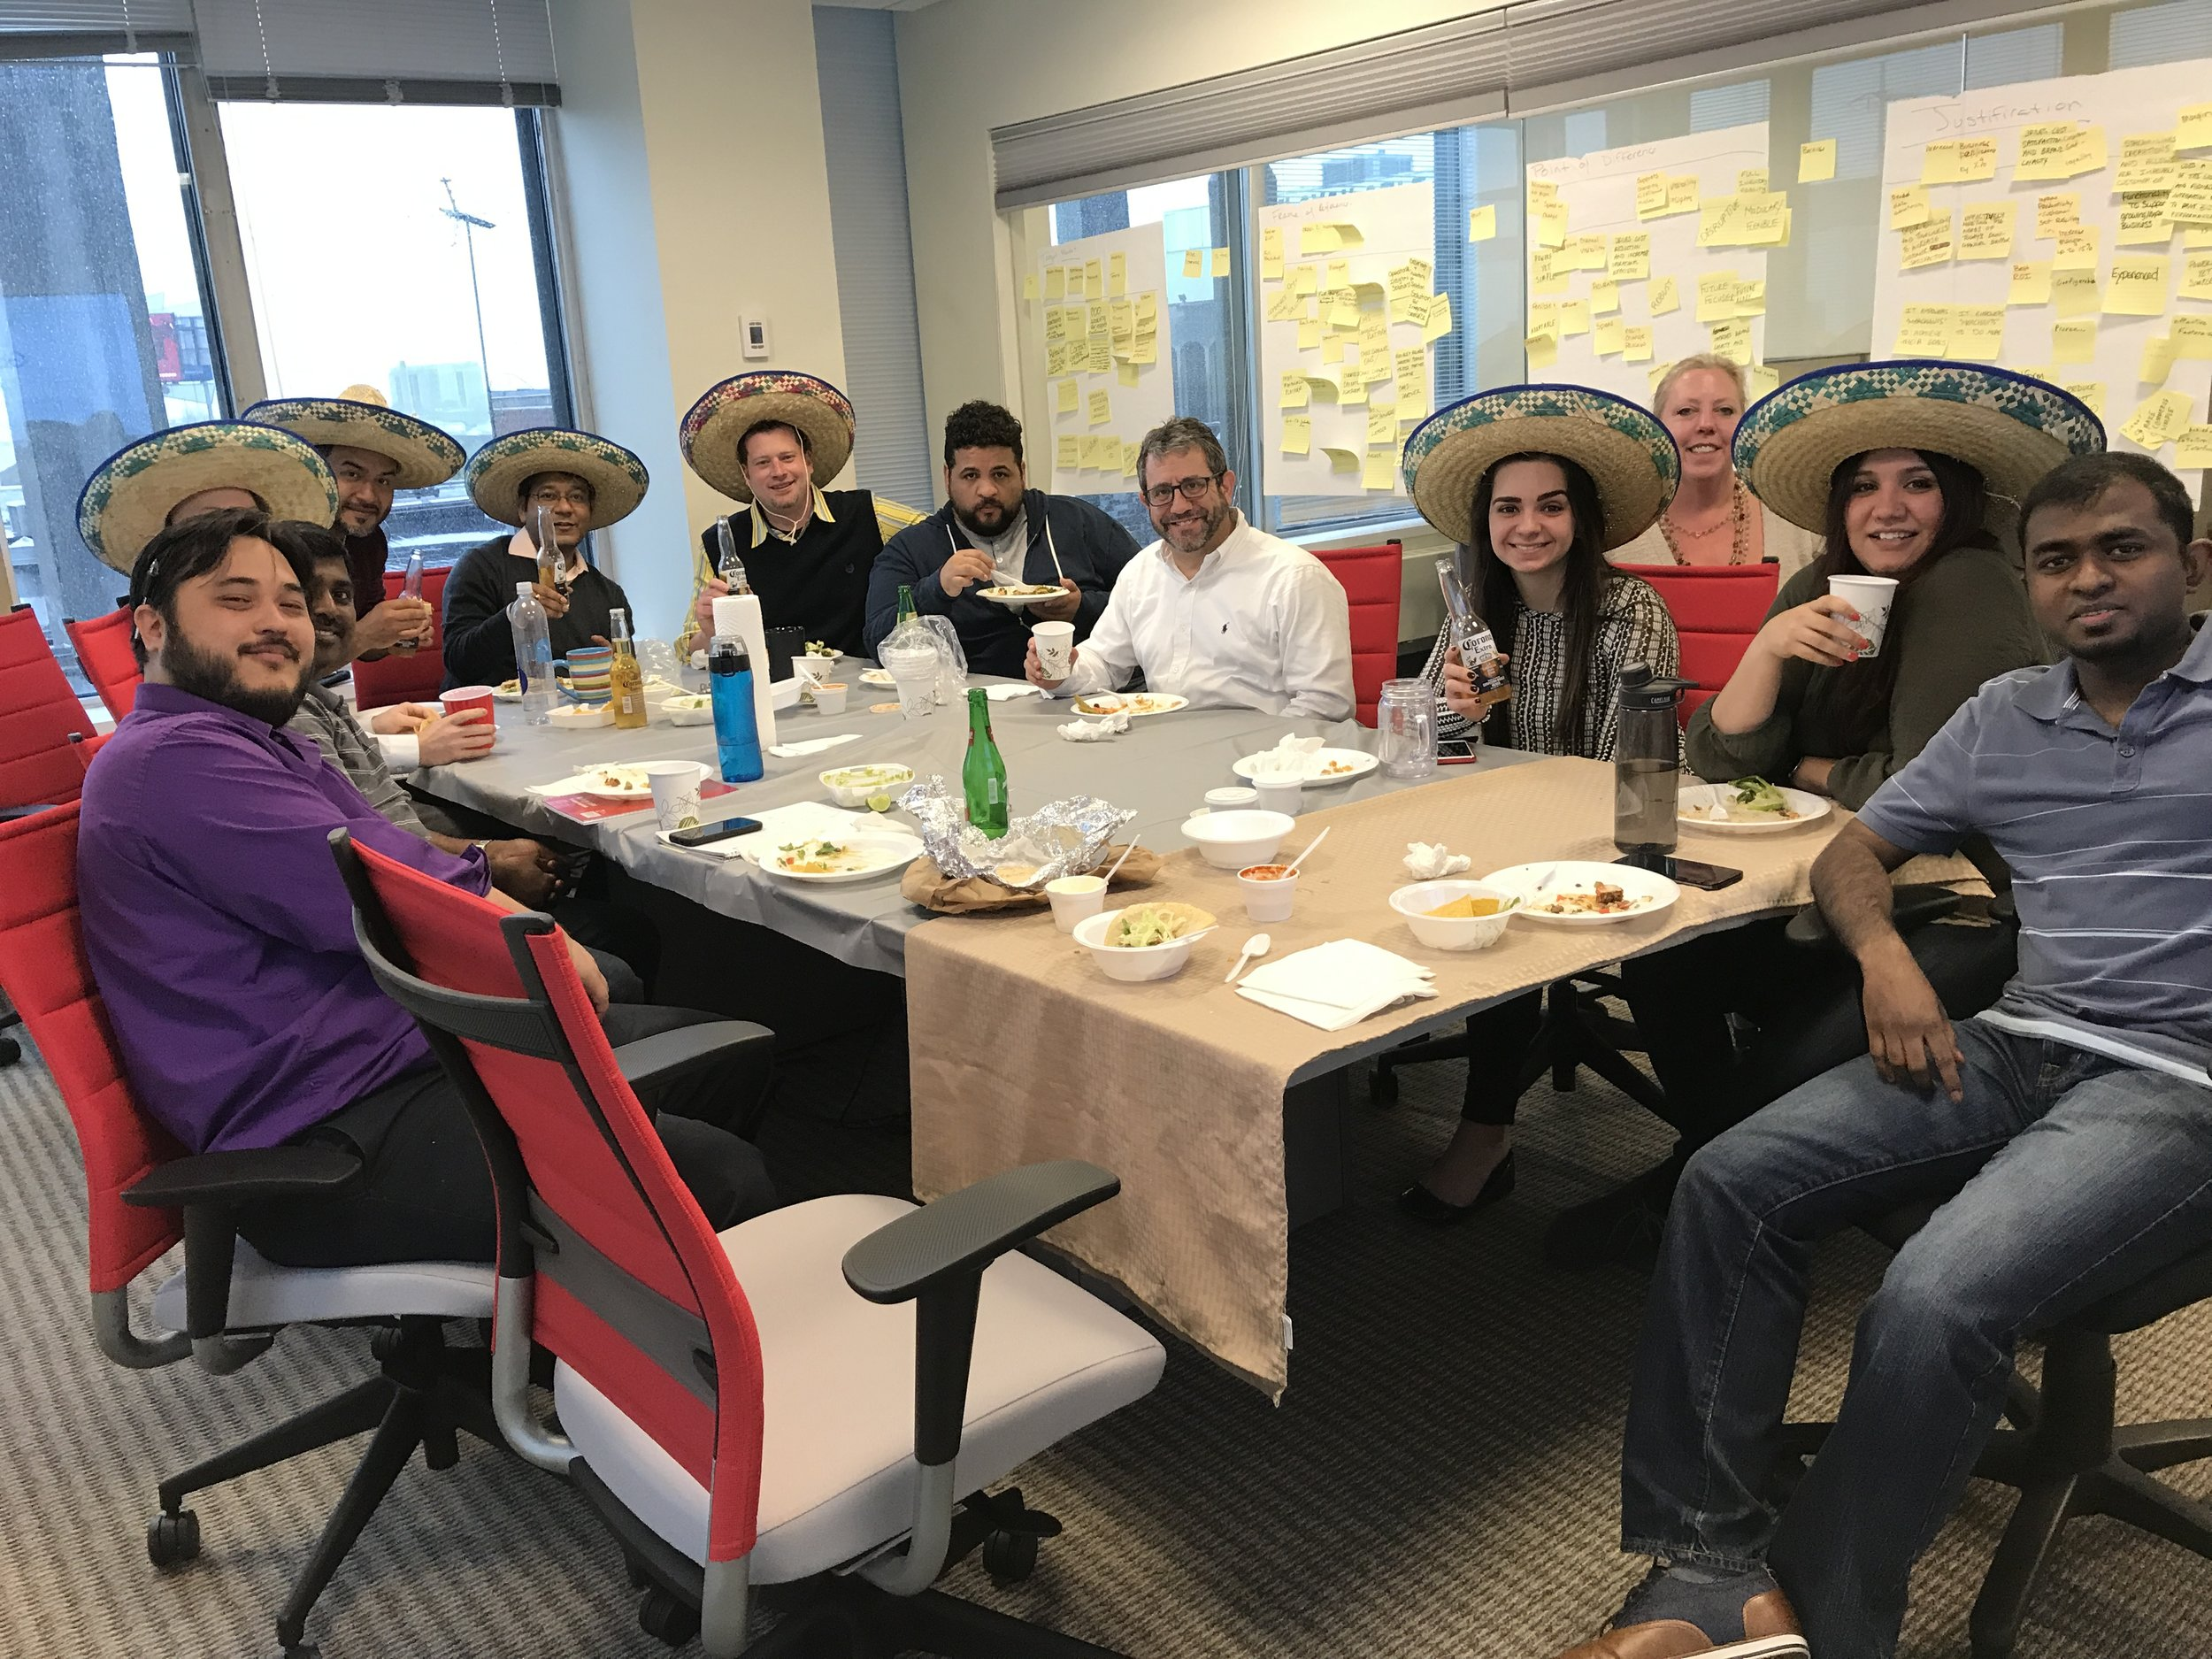 Celebrating Cinco de Mayo at Friday Lunch